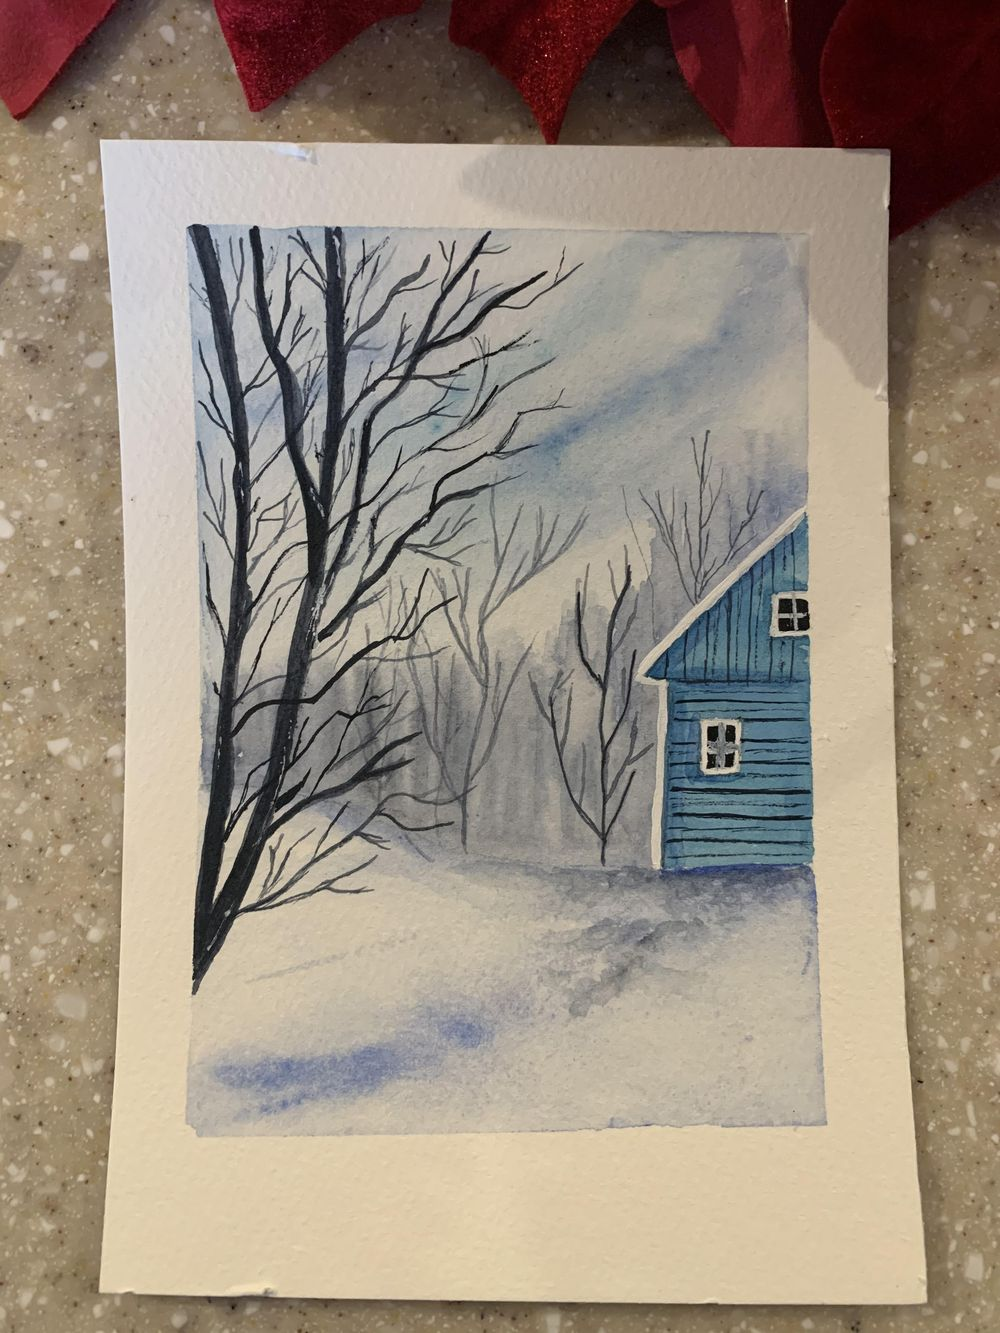 Let it Snow! - image 3 - student project